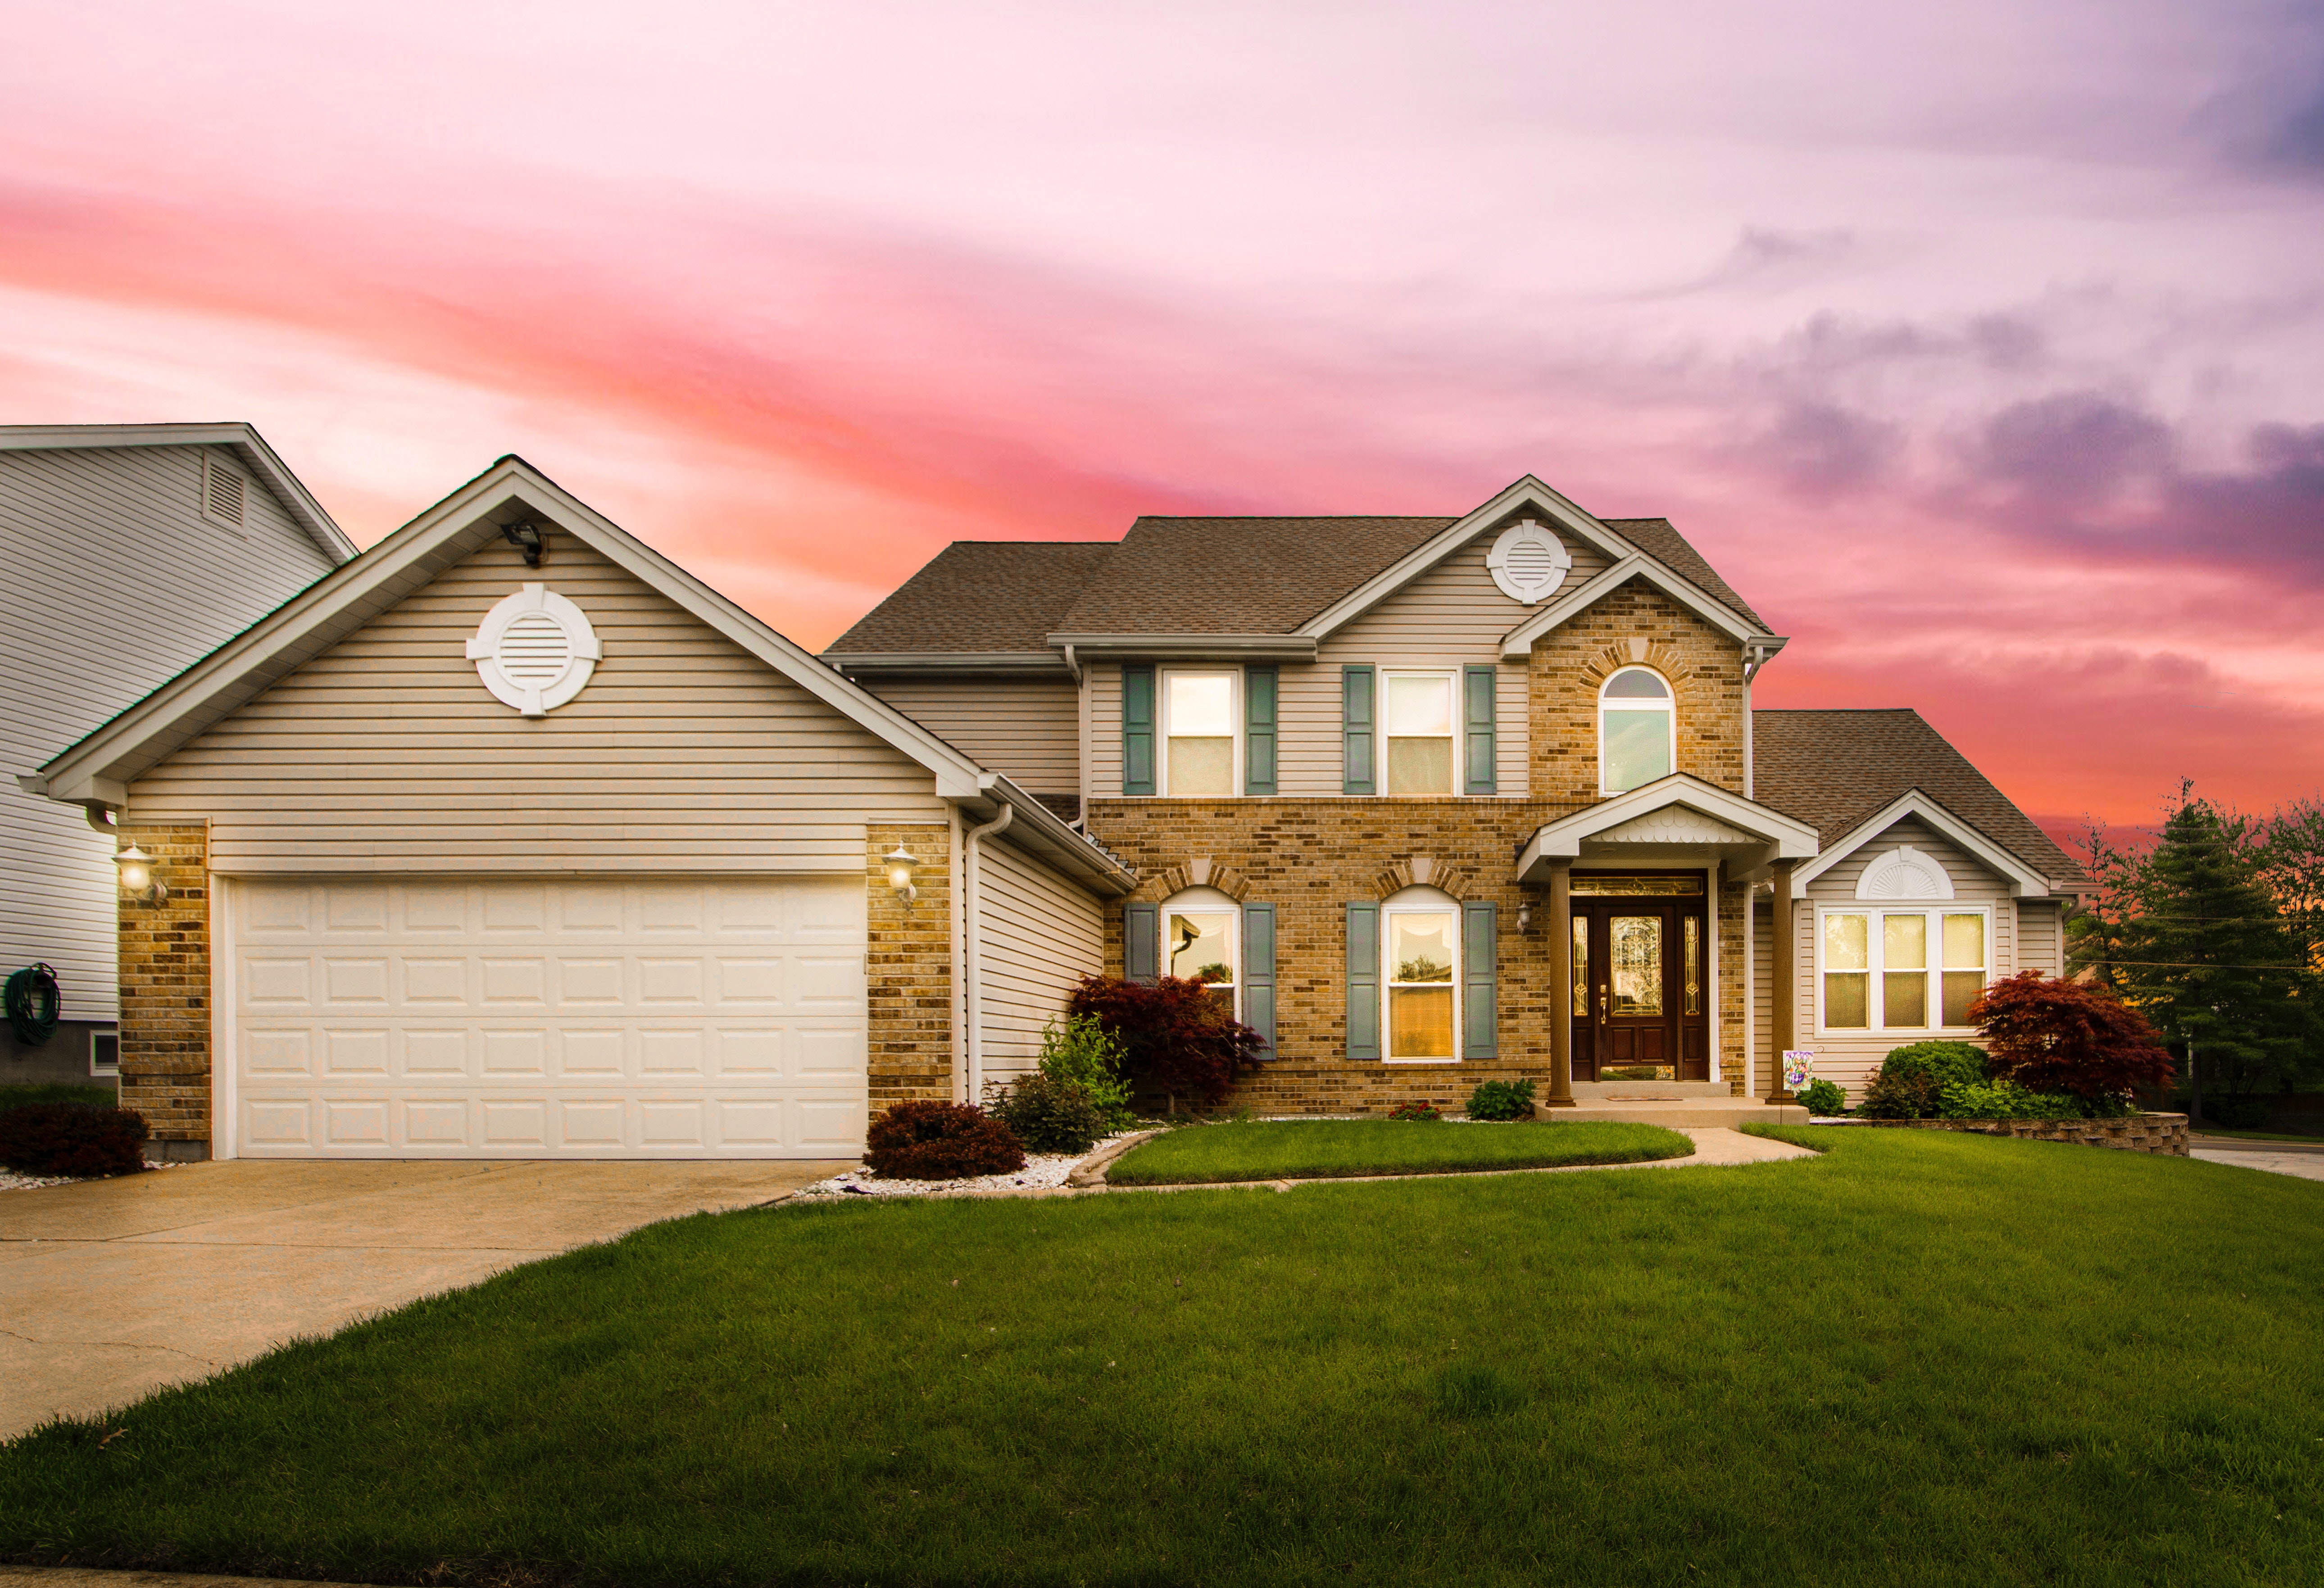 What Taxes Should I Worry About When Flipping Houses?